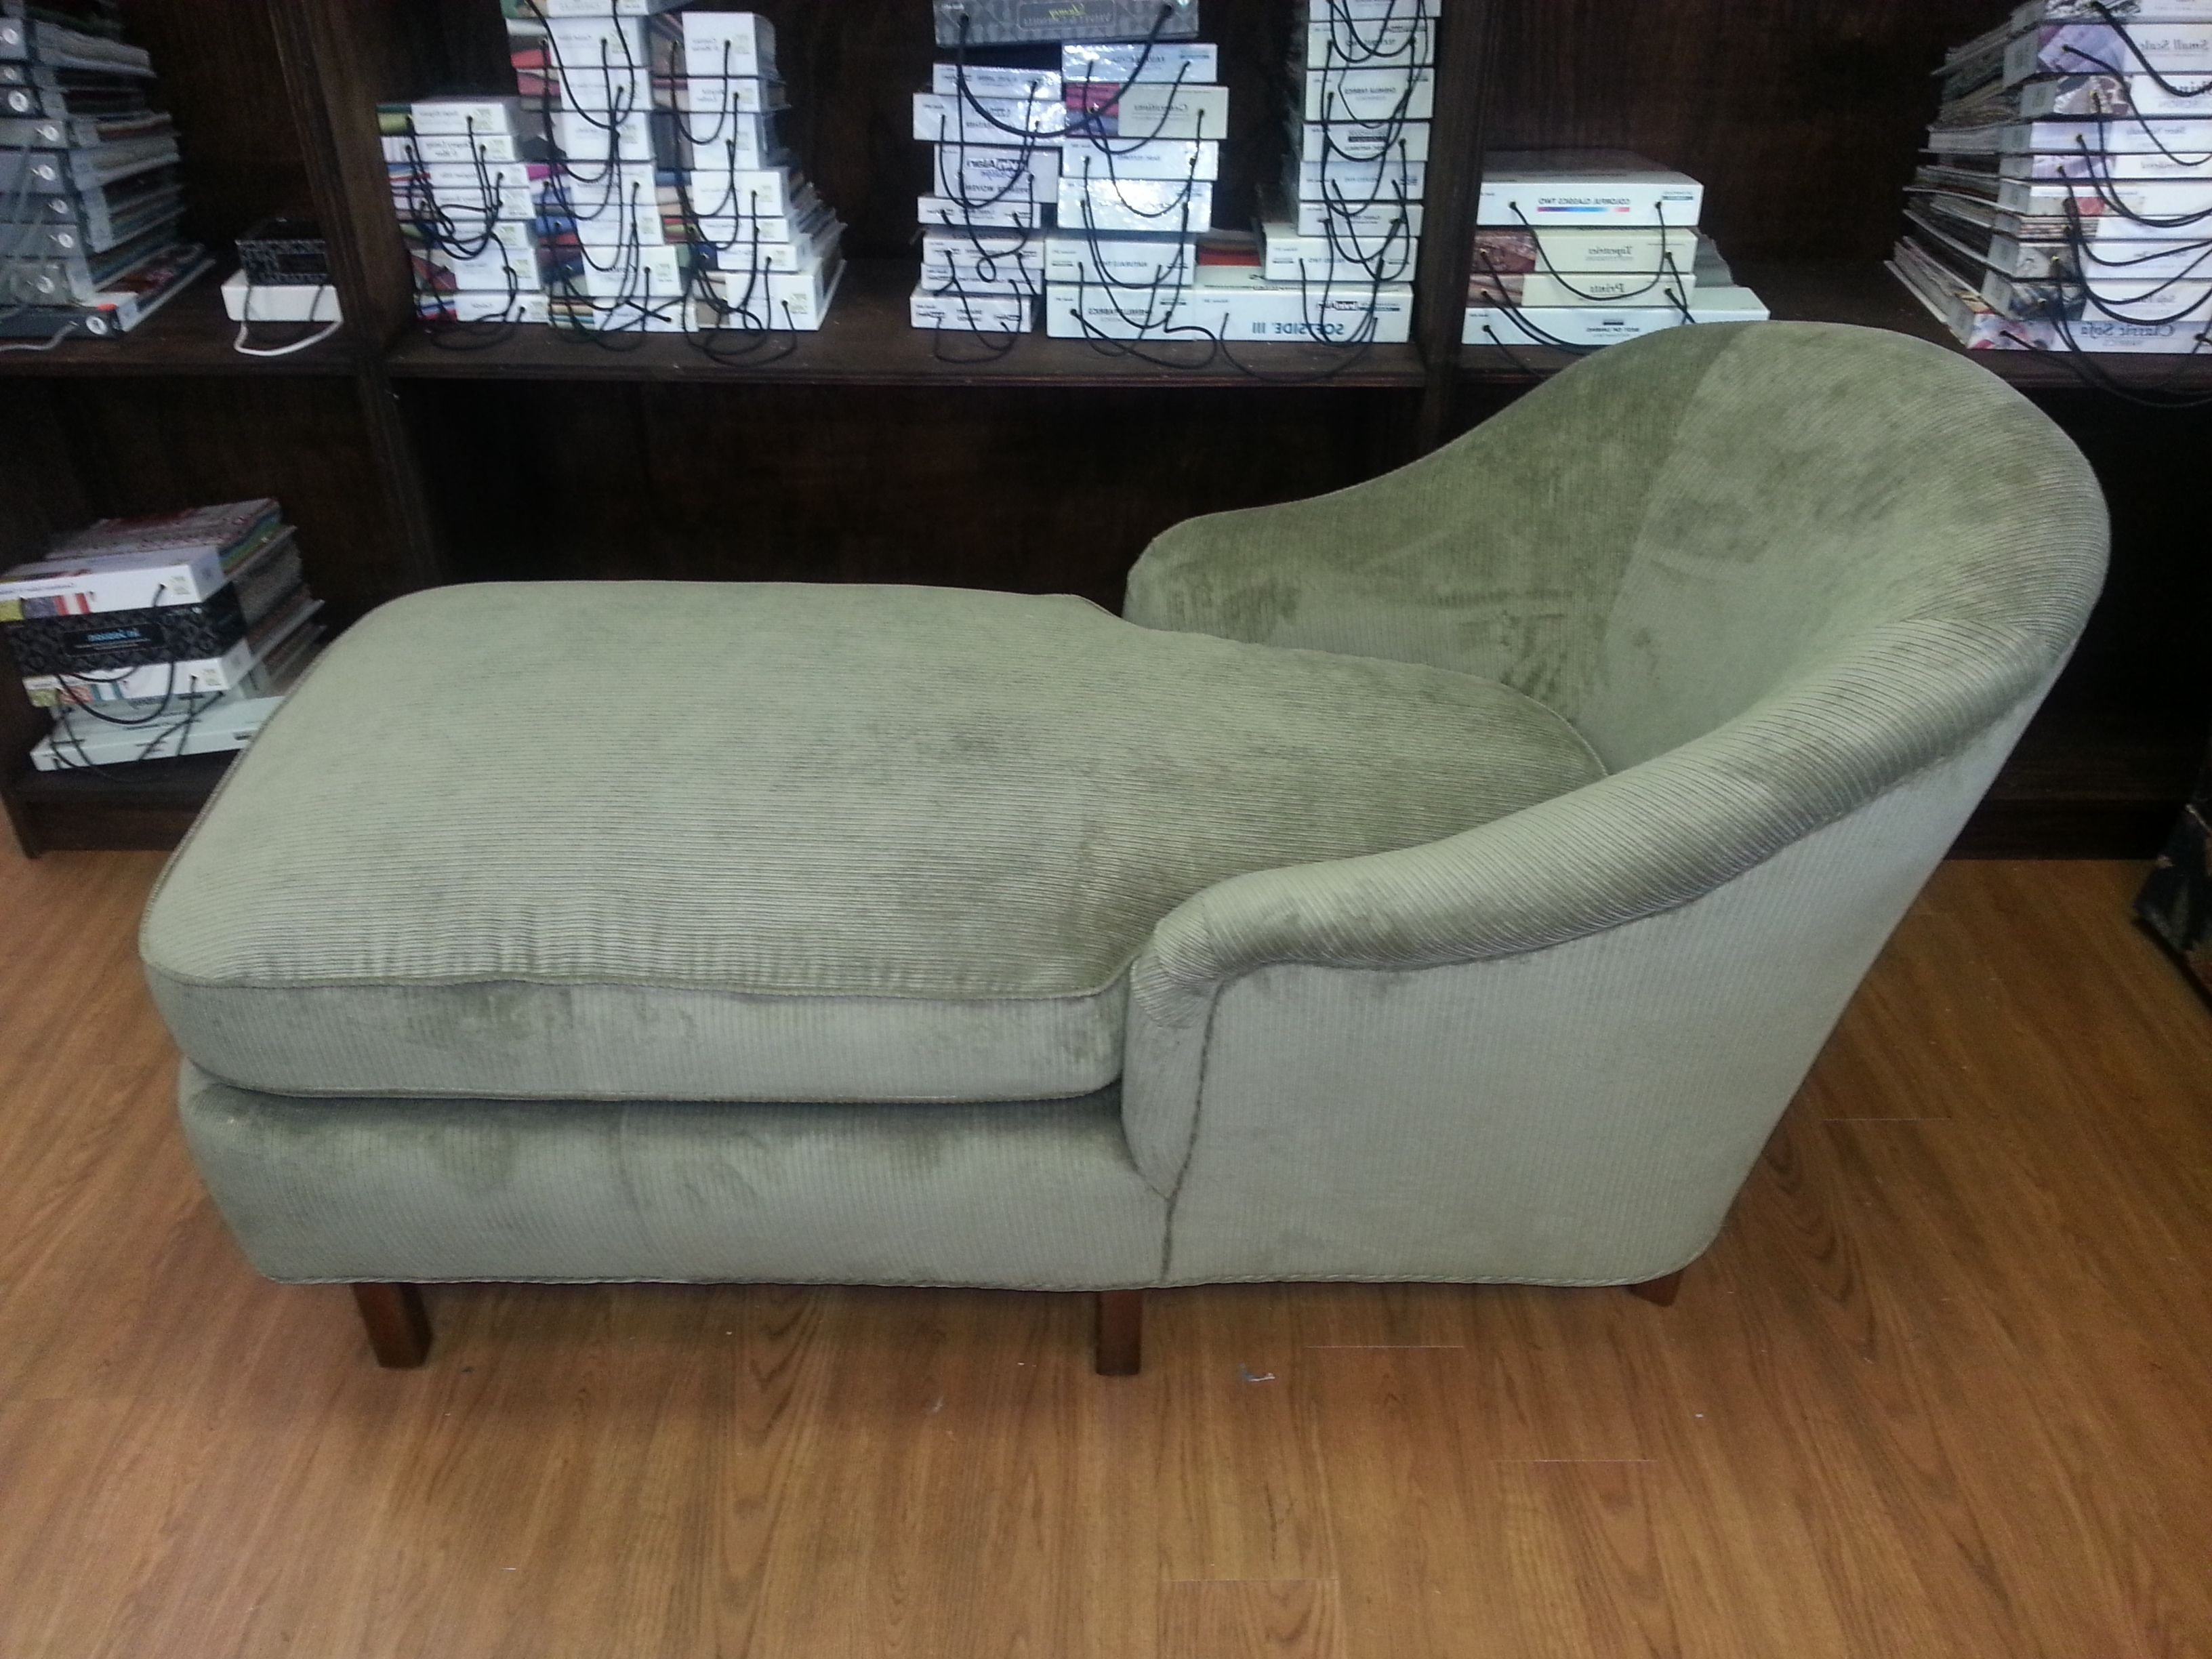 Popular Of Chaise Lounge Slipcover With Chaise Lounge Slipcovers Pertaining To Most Up To Date Indoor Chaise Lounge Slipcovers (View 11 of 15)